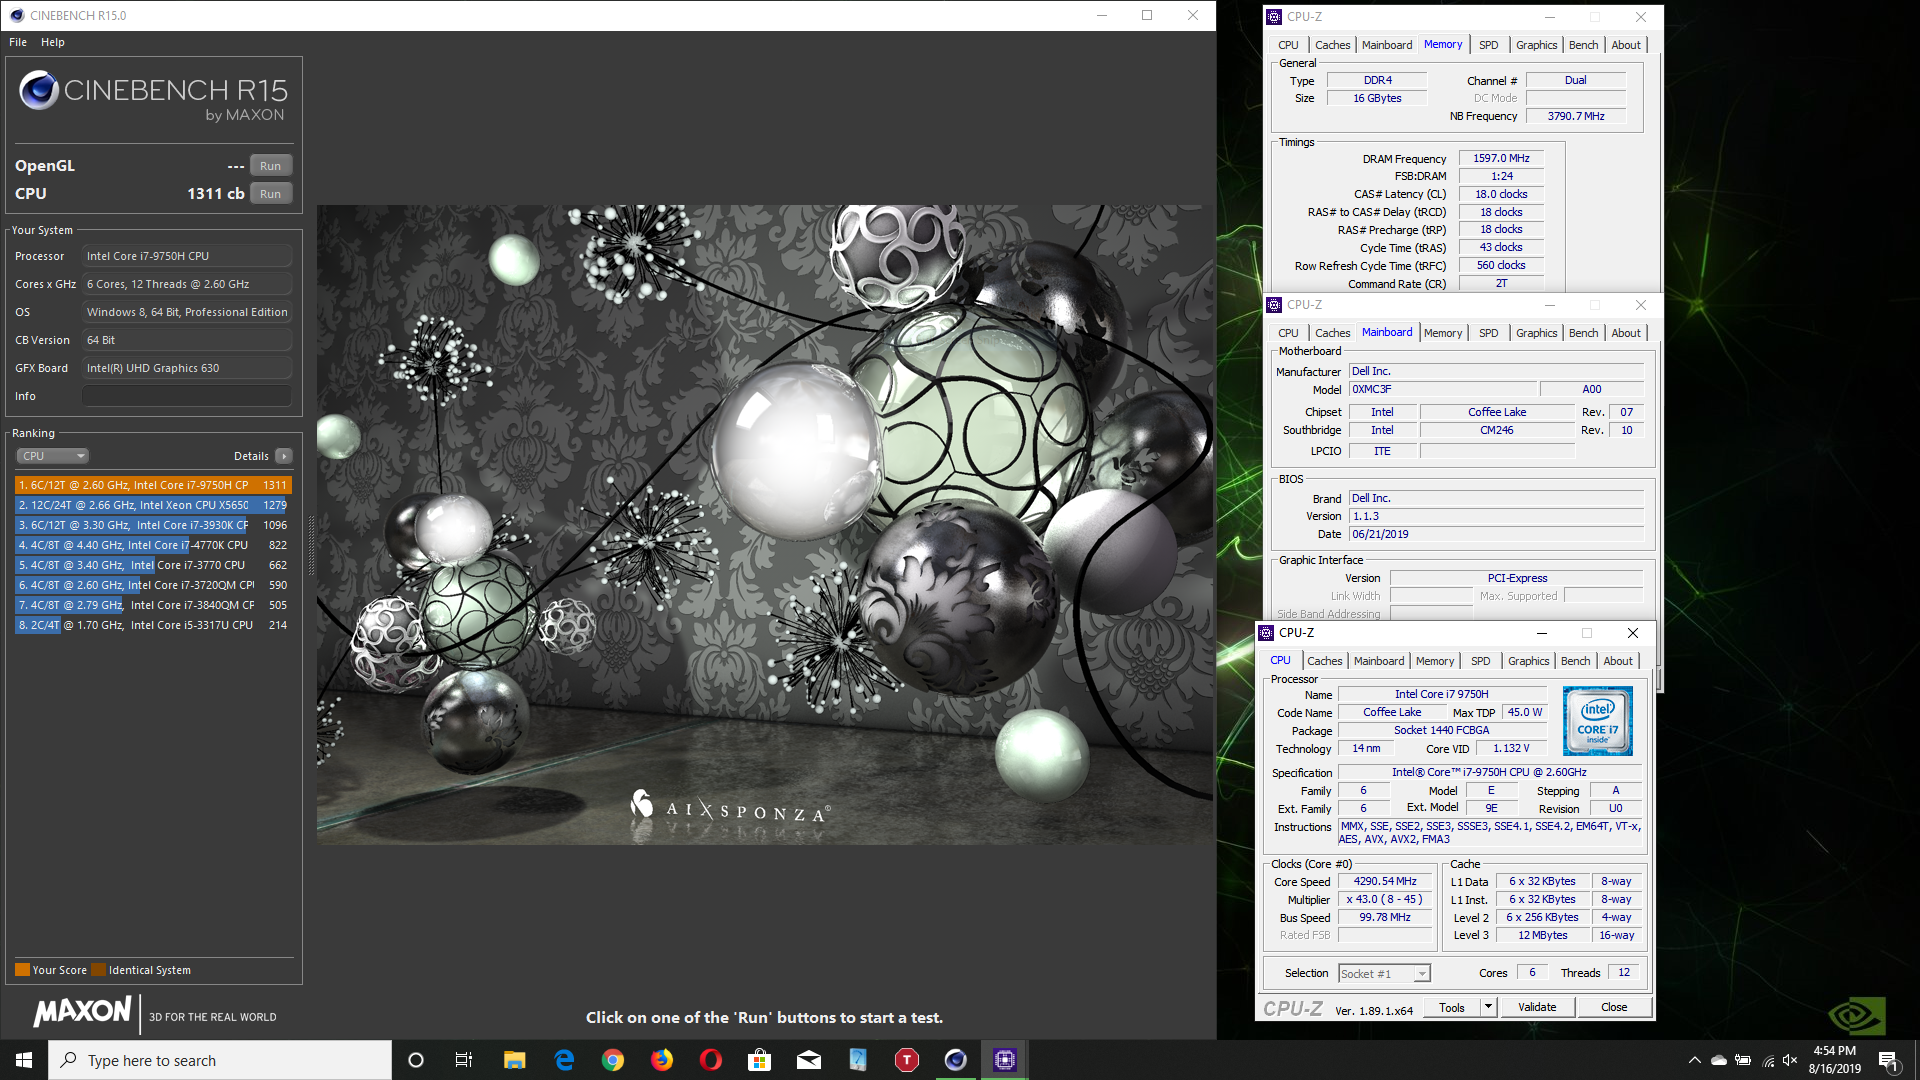 Berfs1`s Cinebench - R15 score: 1311 cb with a Core i7 9750H